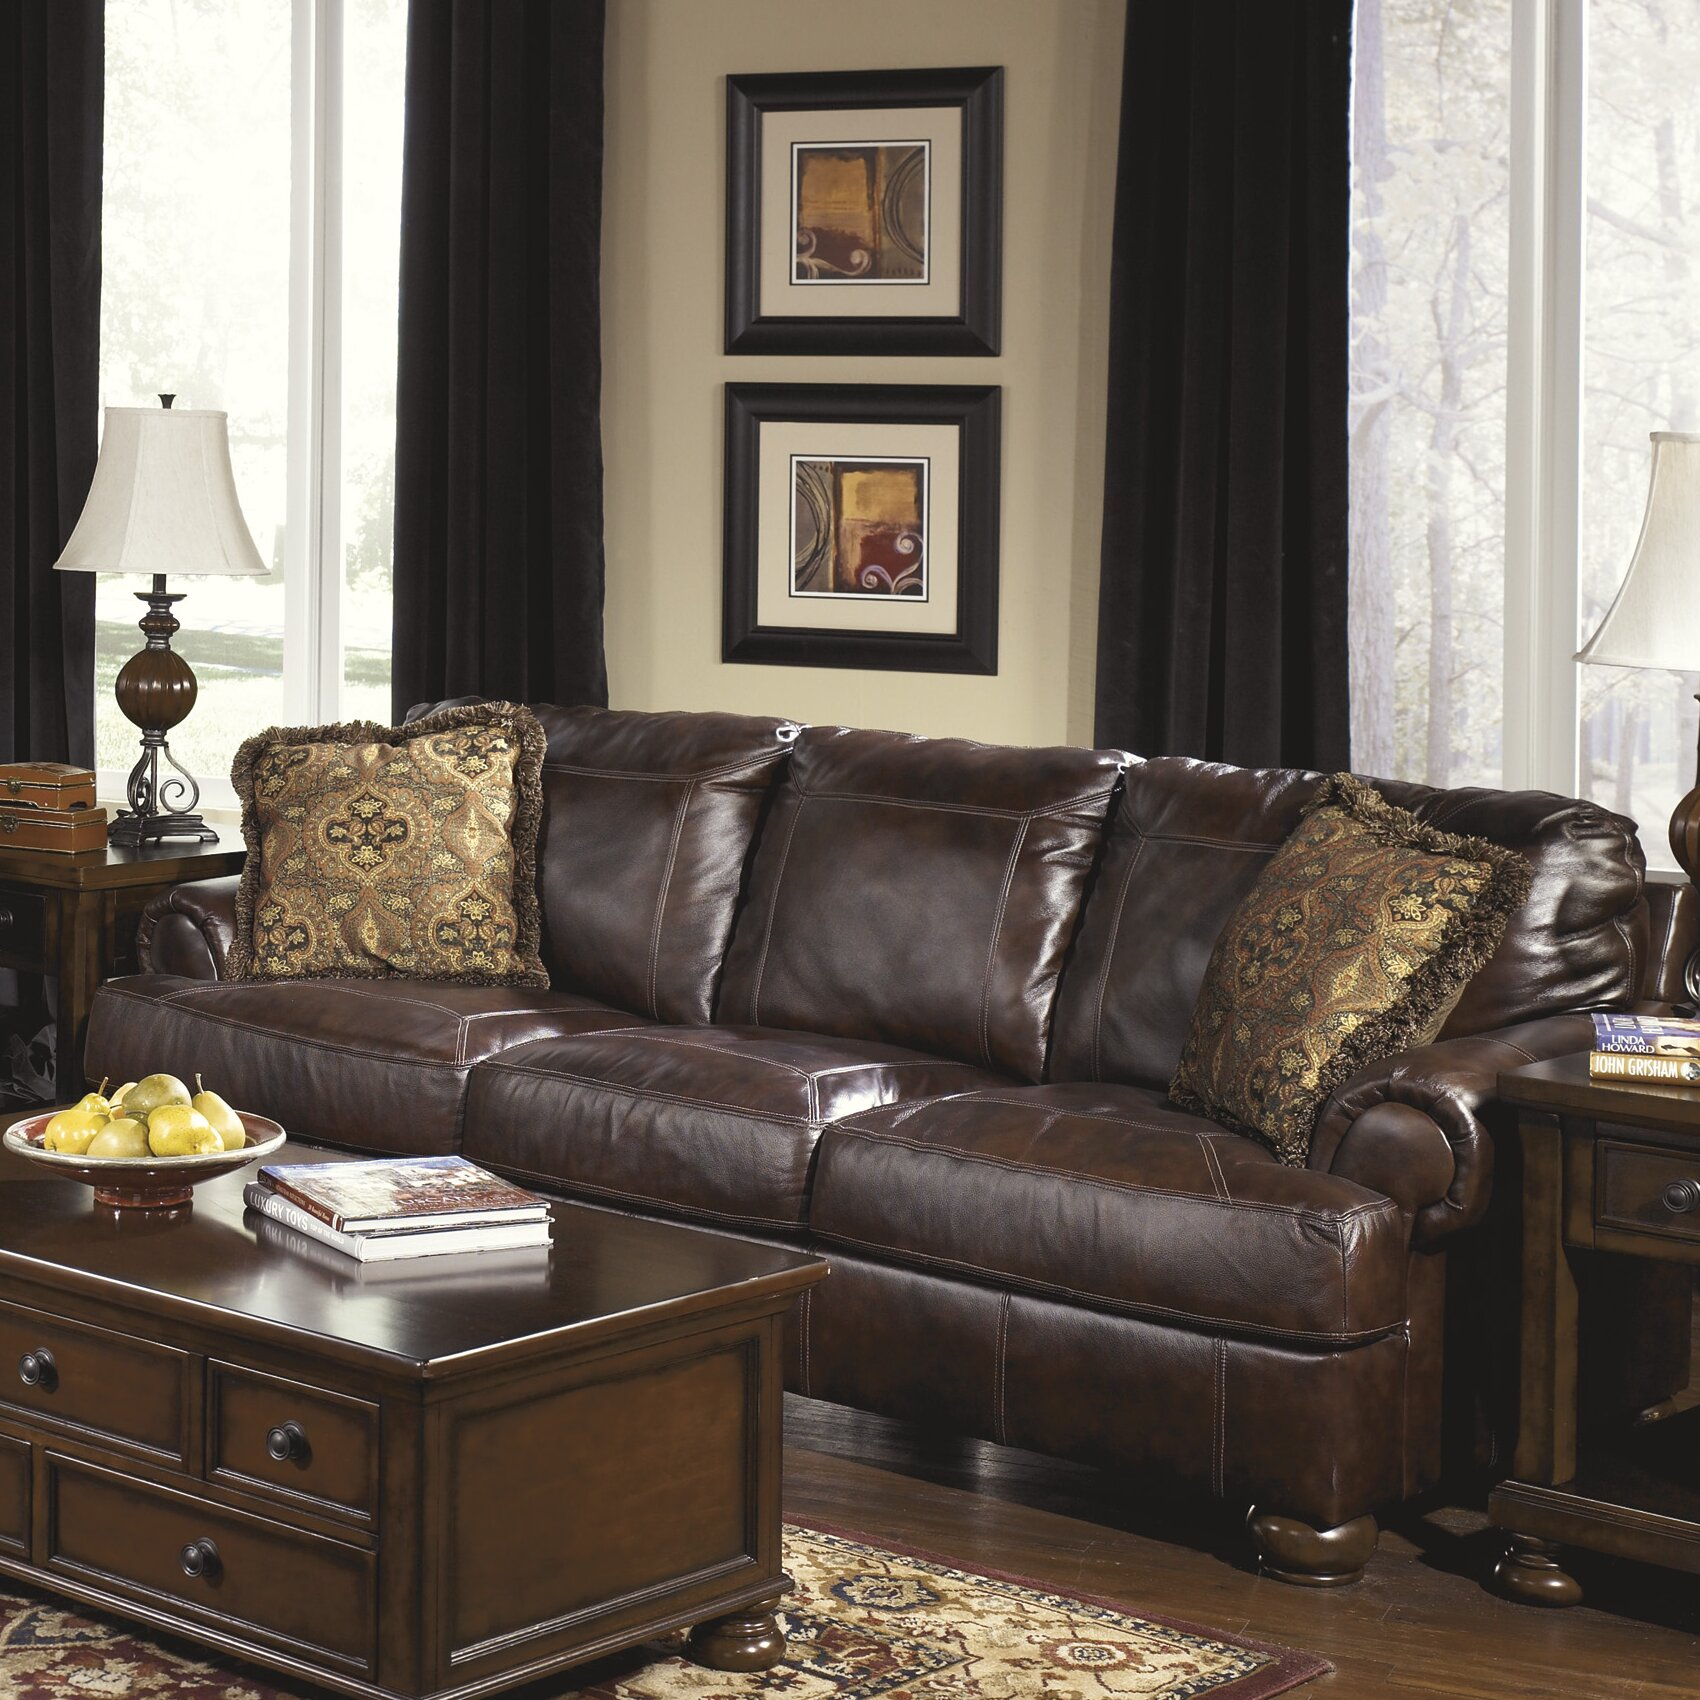 Ashley Leather Sofa: Signature Design By Ashley Heath Leather Sofa & Reviews